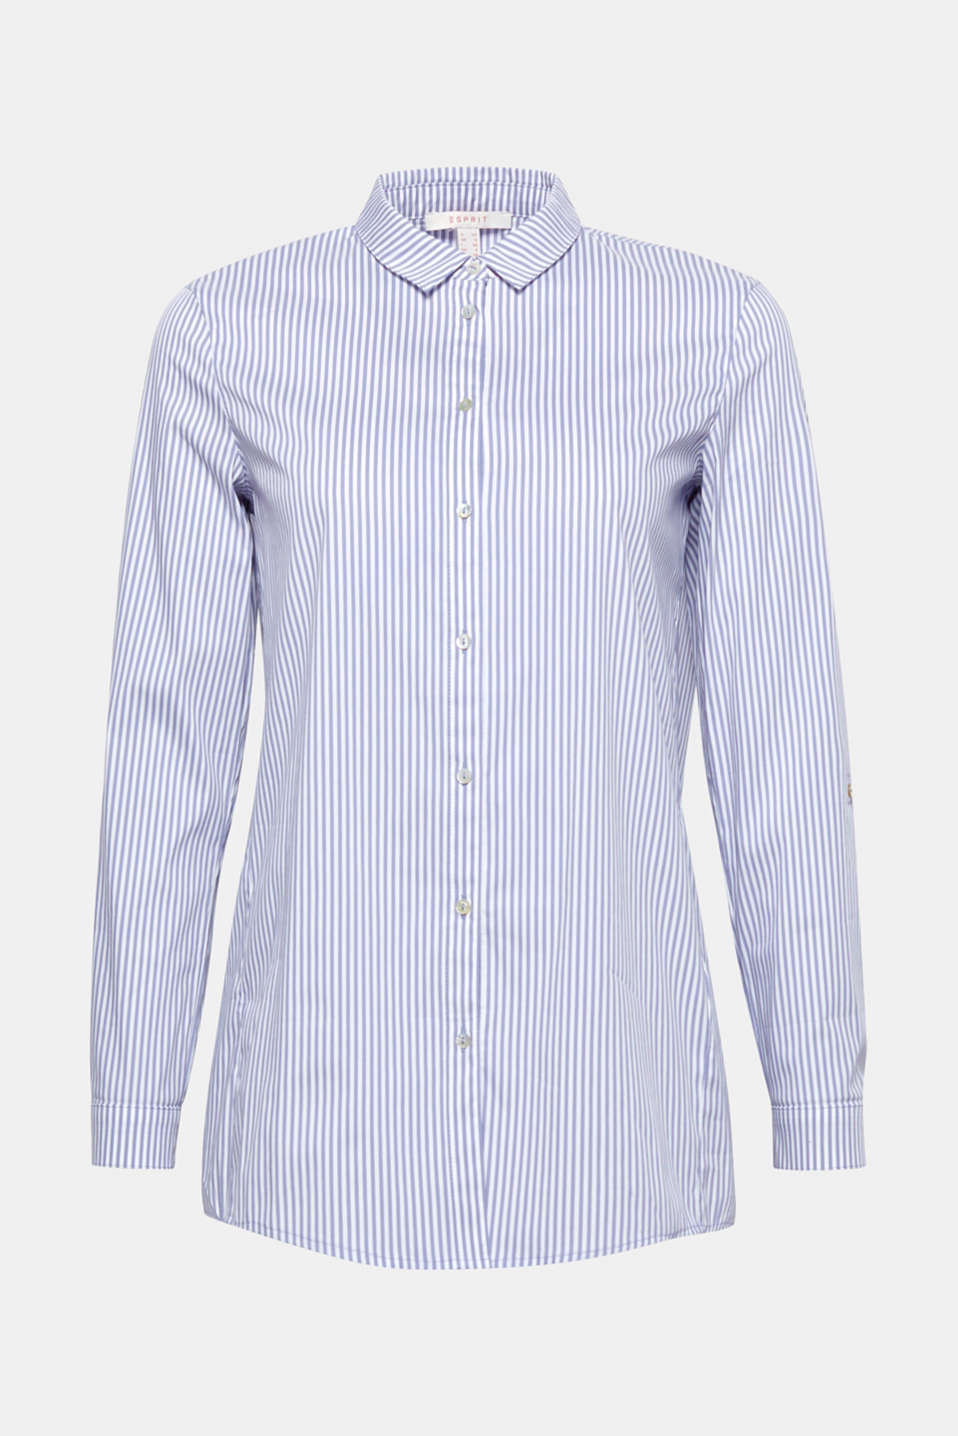 This lightweight, straight cut shirt blouse with fine vertical stripes and adjustable turn-up sleeves is simply cool!